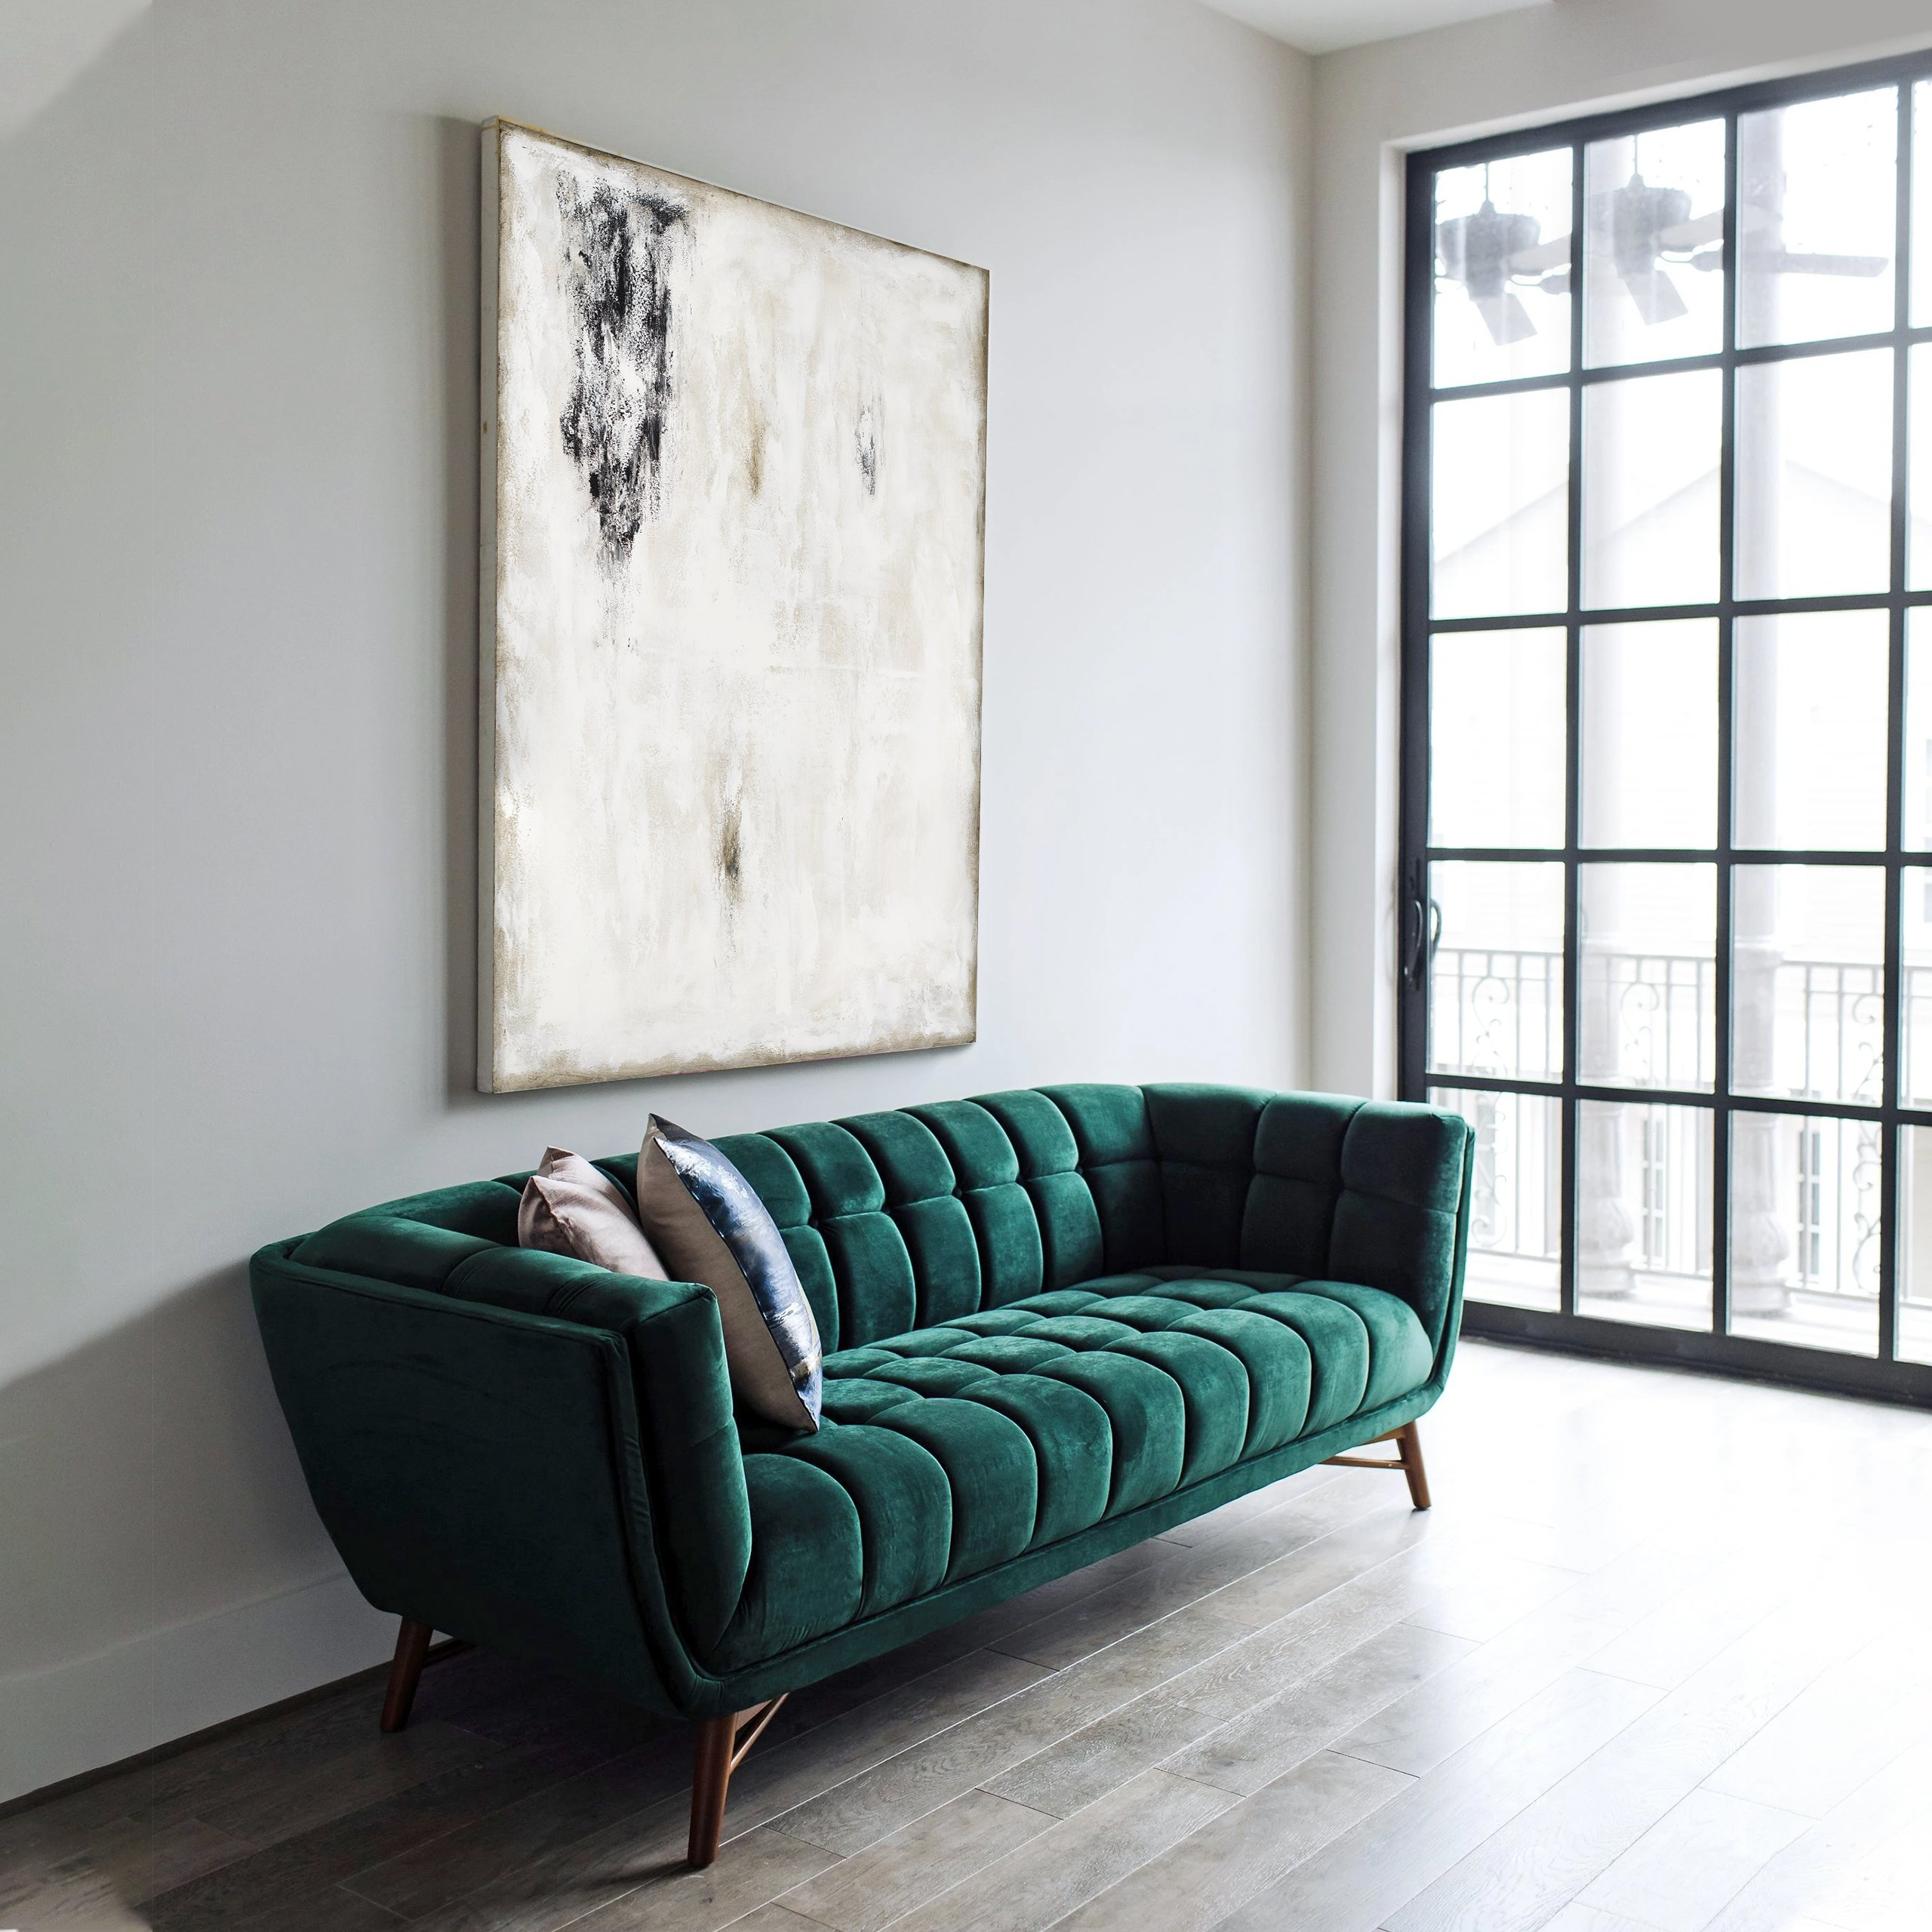 Black and white abstract art over sofa, Living room art